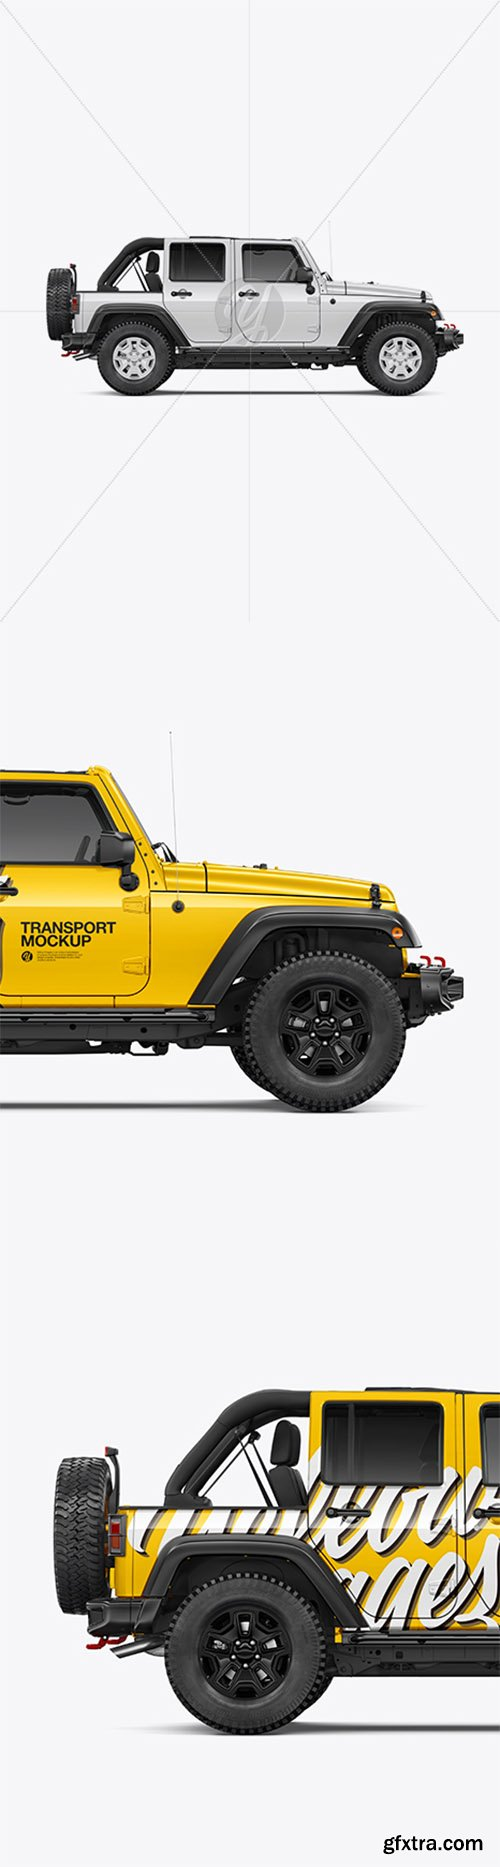 Off-Road SUV with Open Roof Mockup - Side View 39964